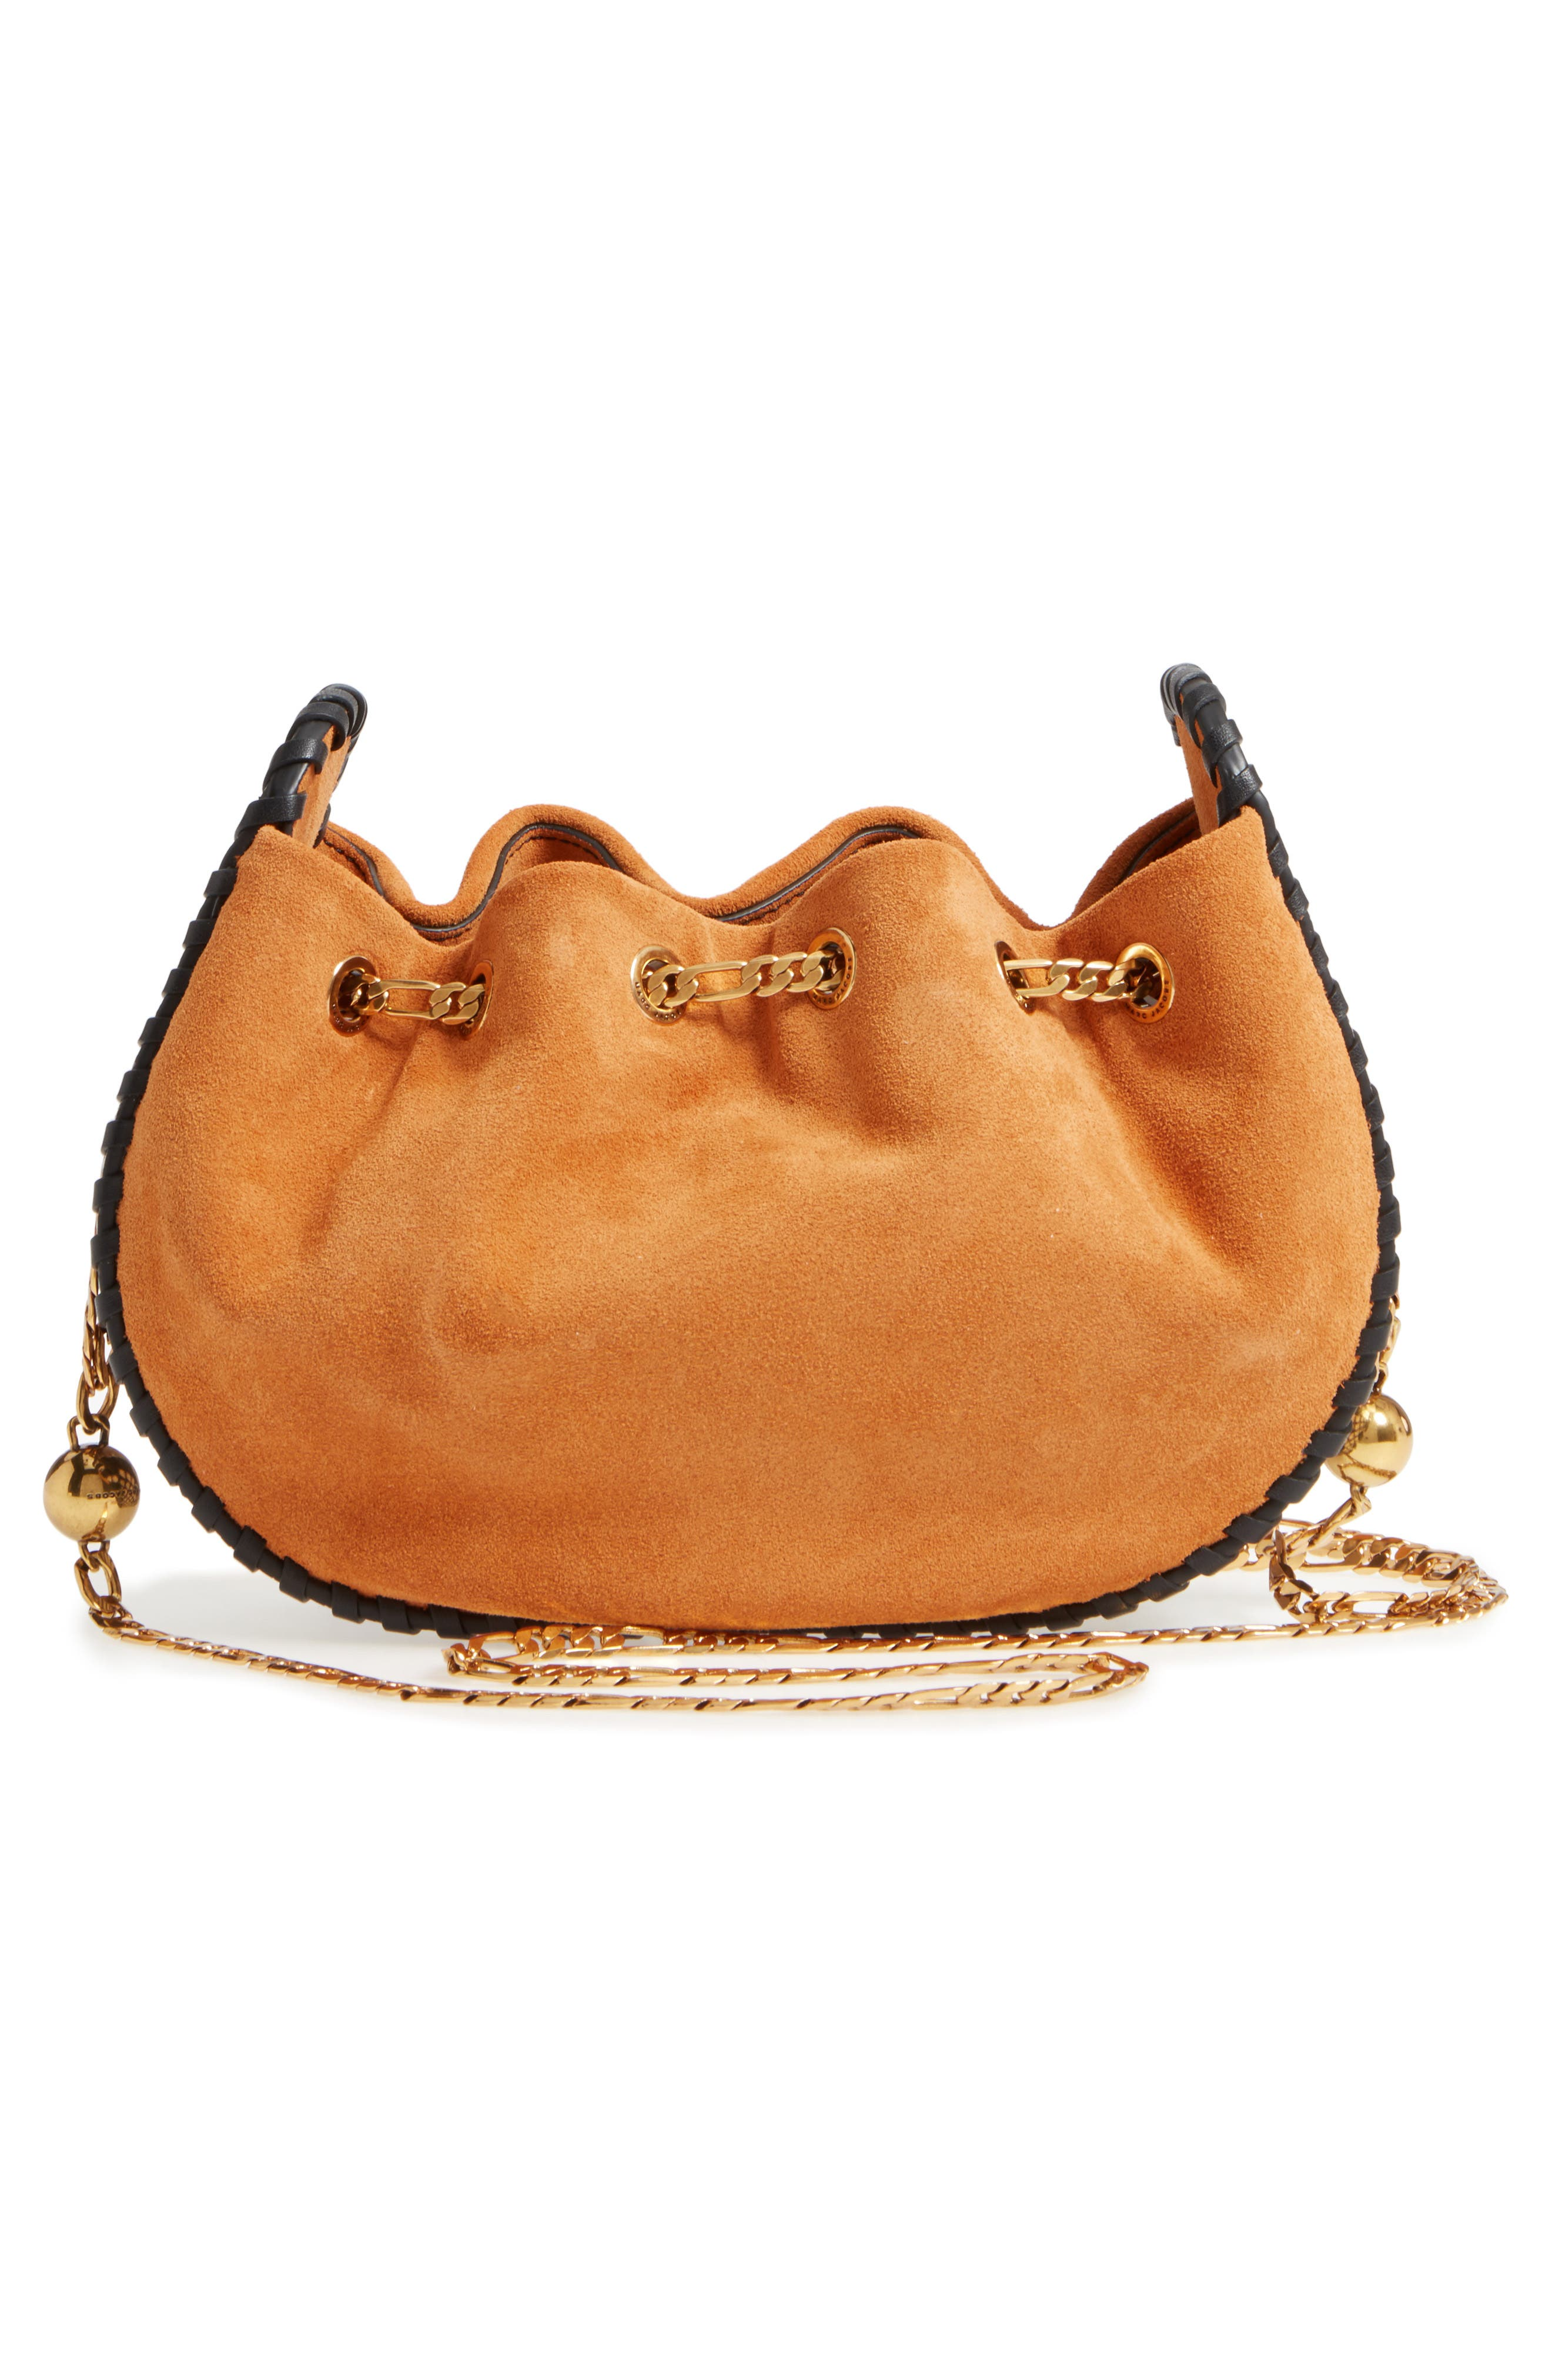 Sway Party Suede Crossbody Bag,                             Alternate thumbnail 3, color,                             276